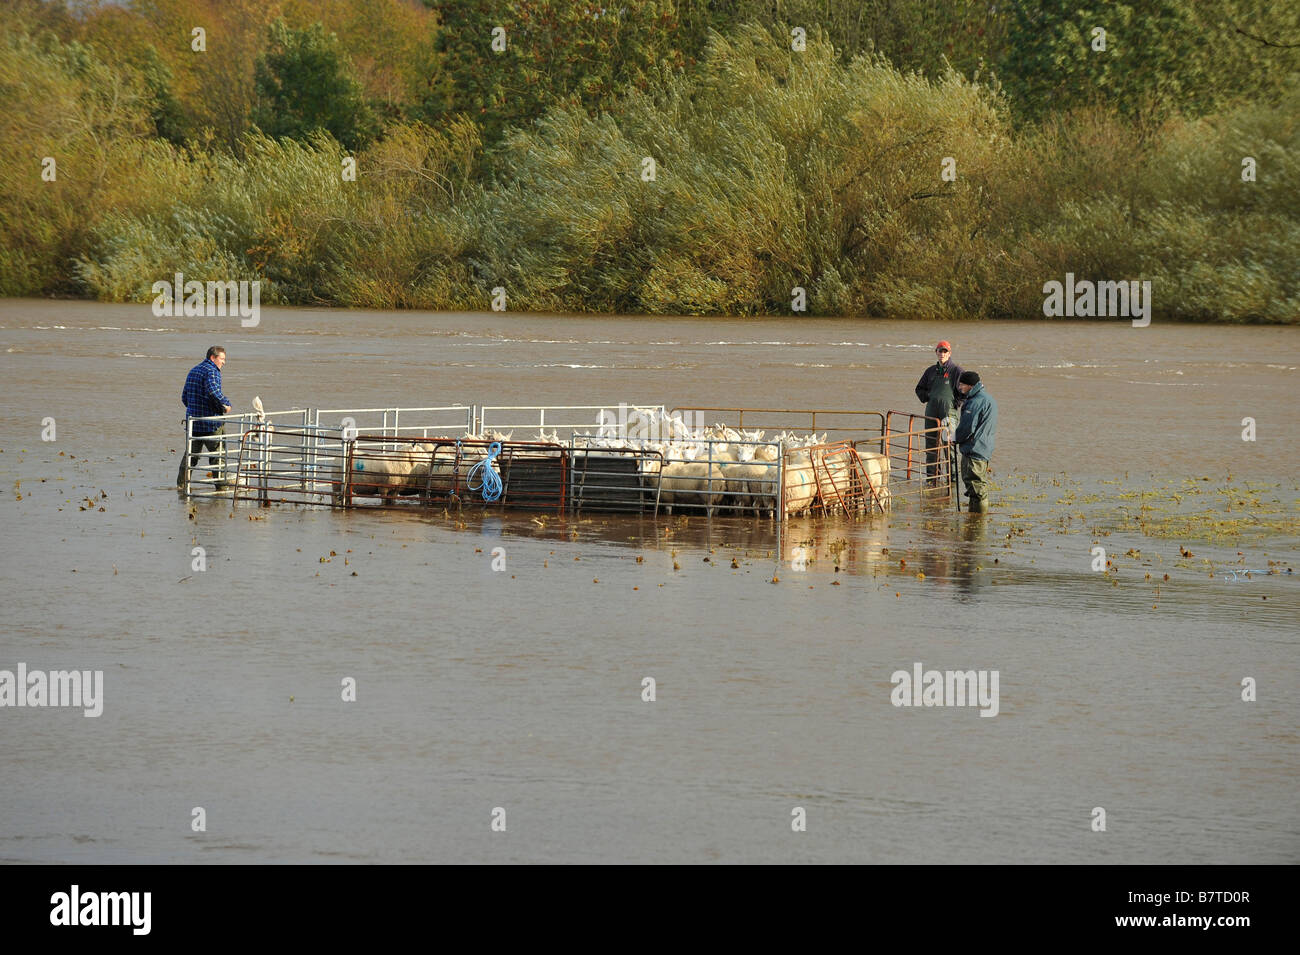 Farmers wade into floodwaters on the River Eden to rescue a flock of stranded sheep - Stock Image